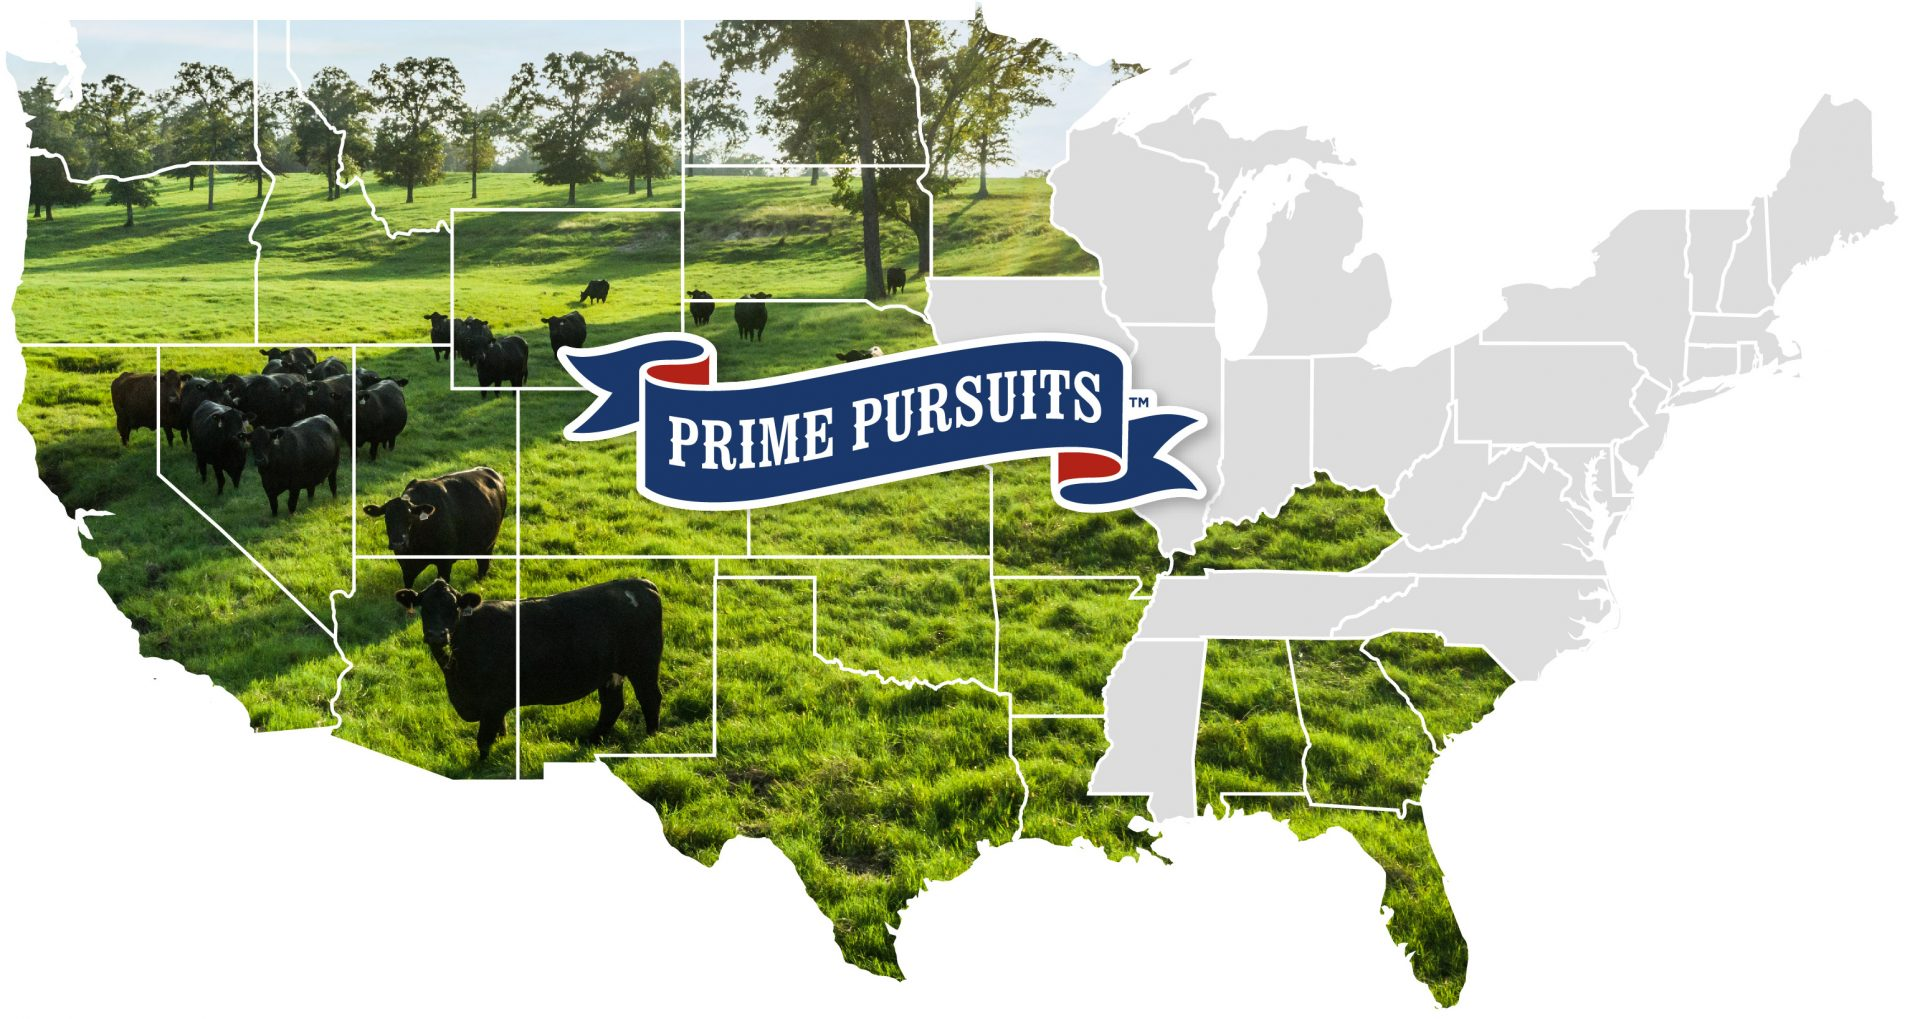 Today, more than 800 Angus producers, large and small, are part of the Prime Pursuits family.